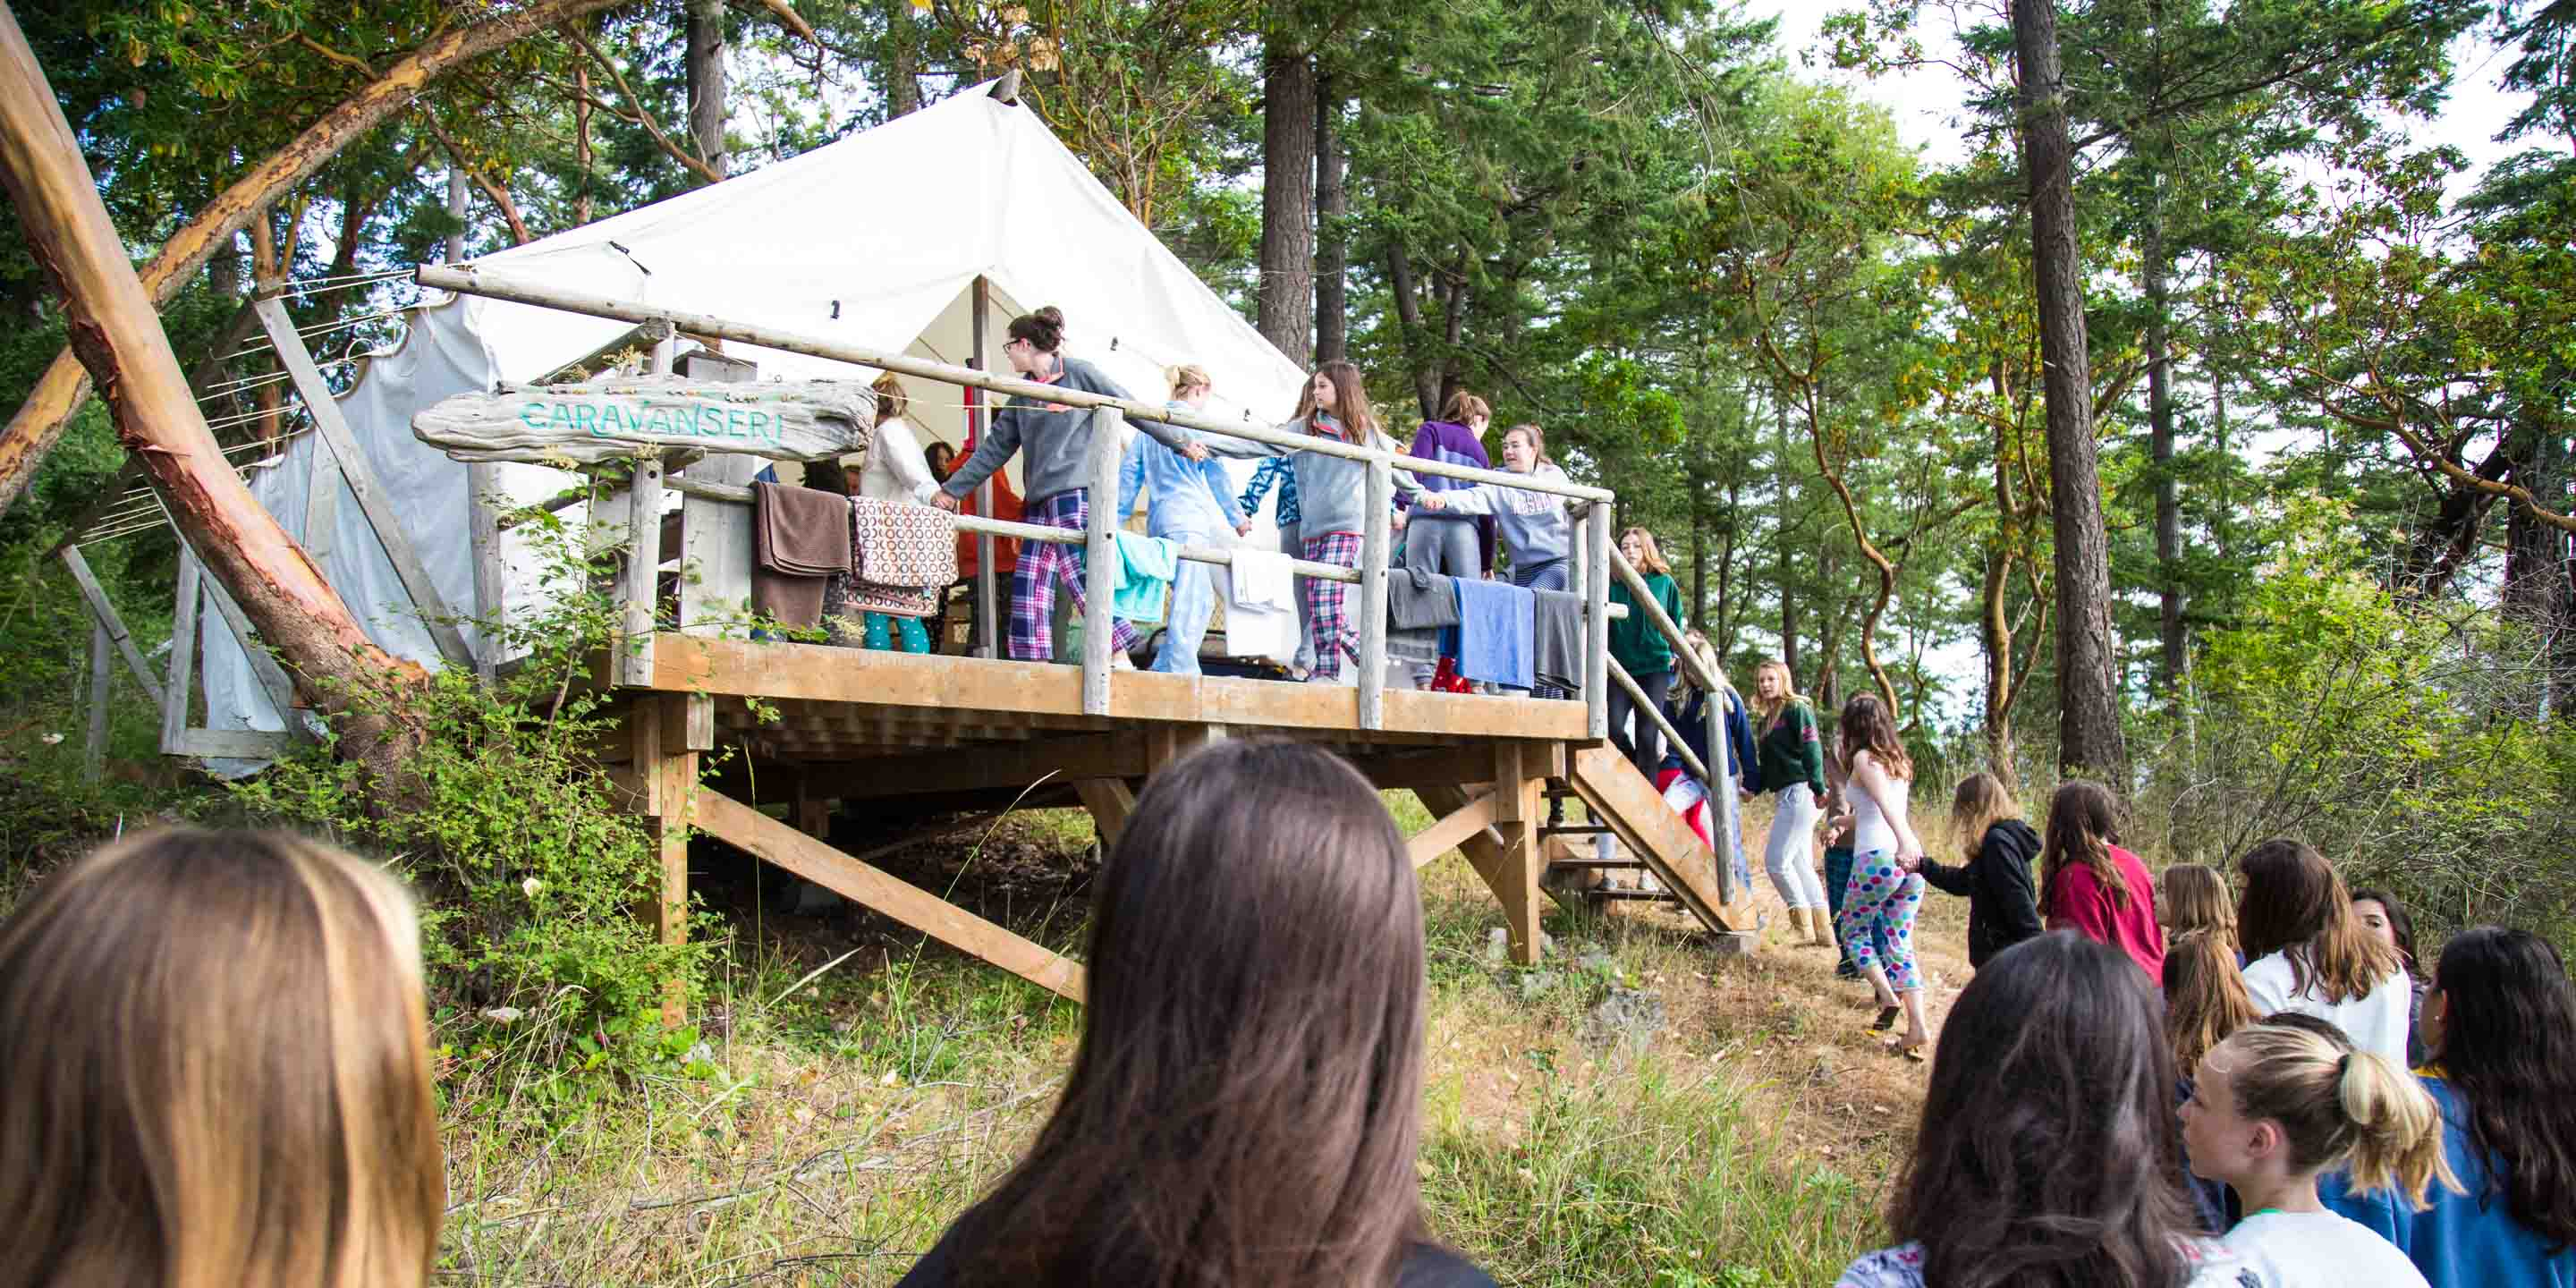 Campers form line into canvas tent on Gypsy Day